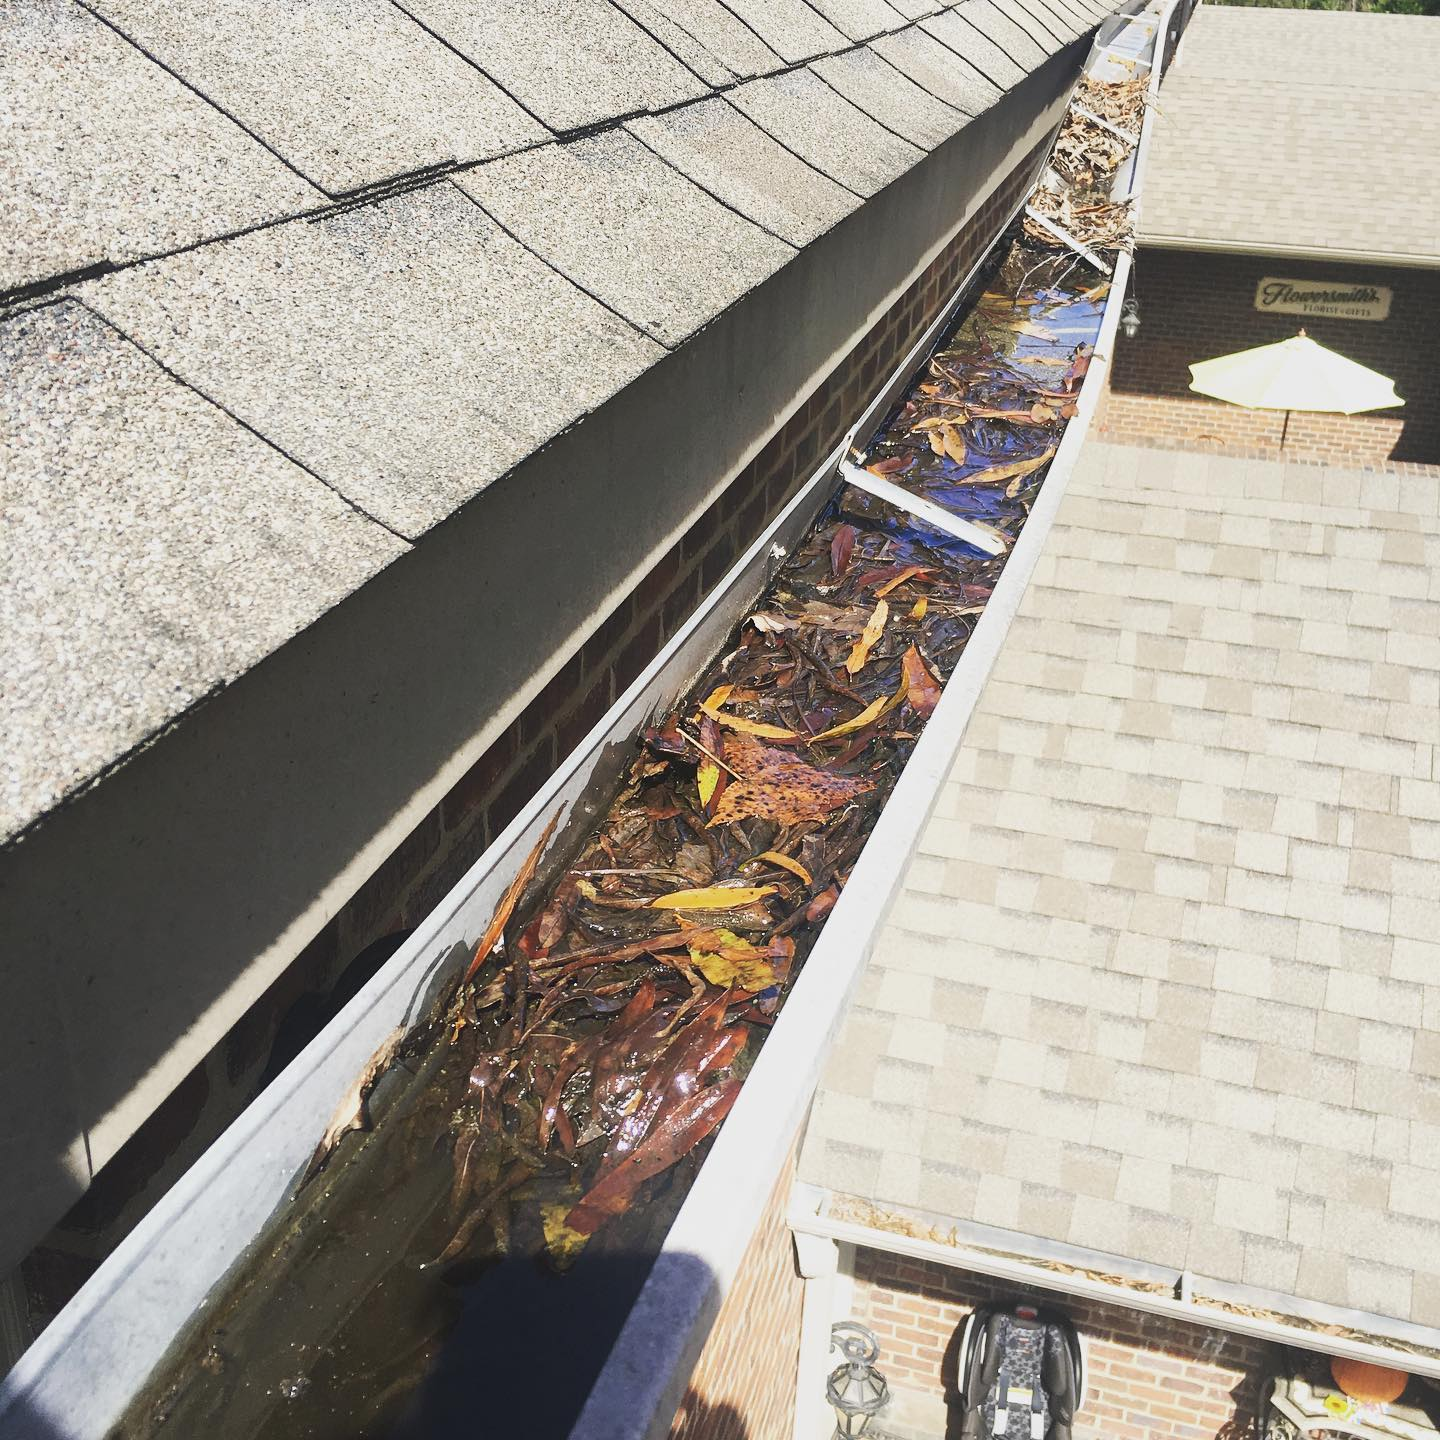 local small business that cleans gutters